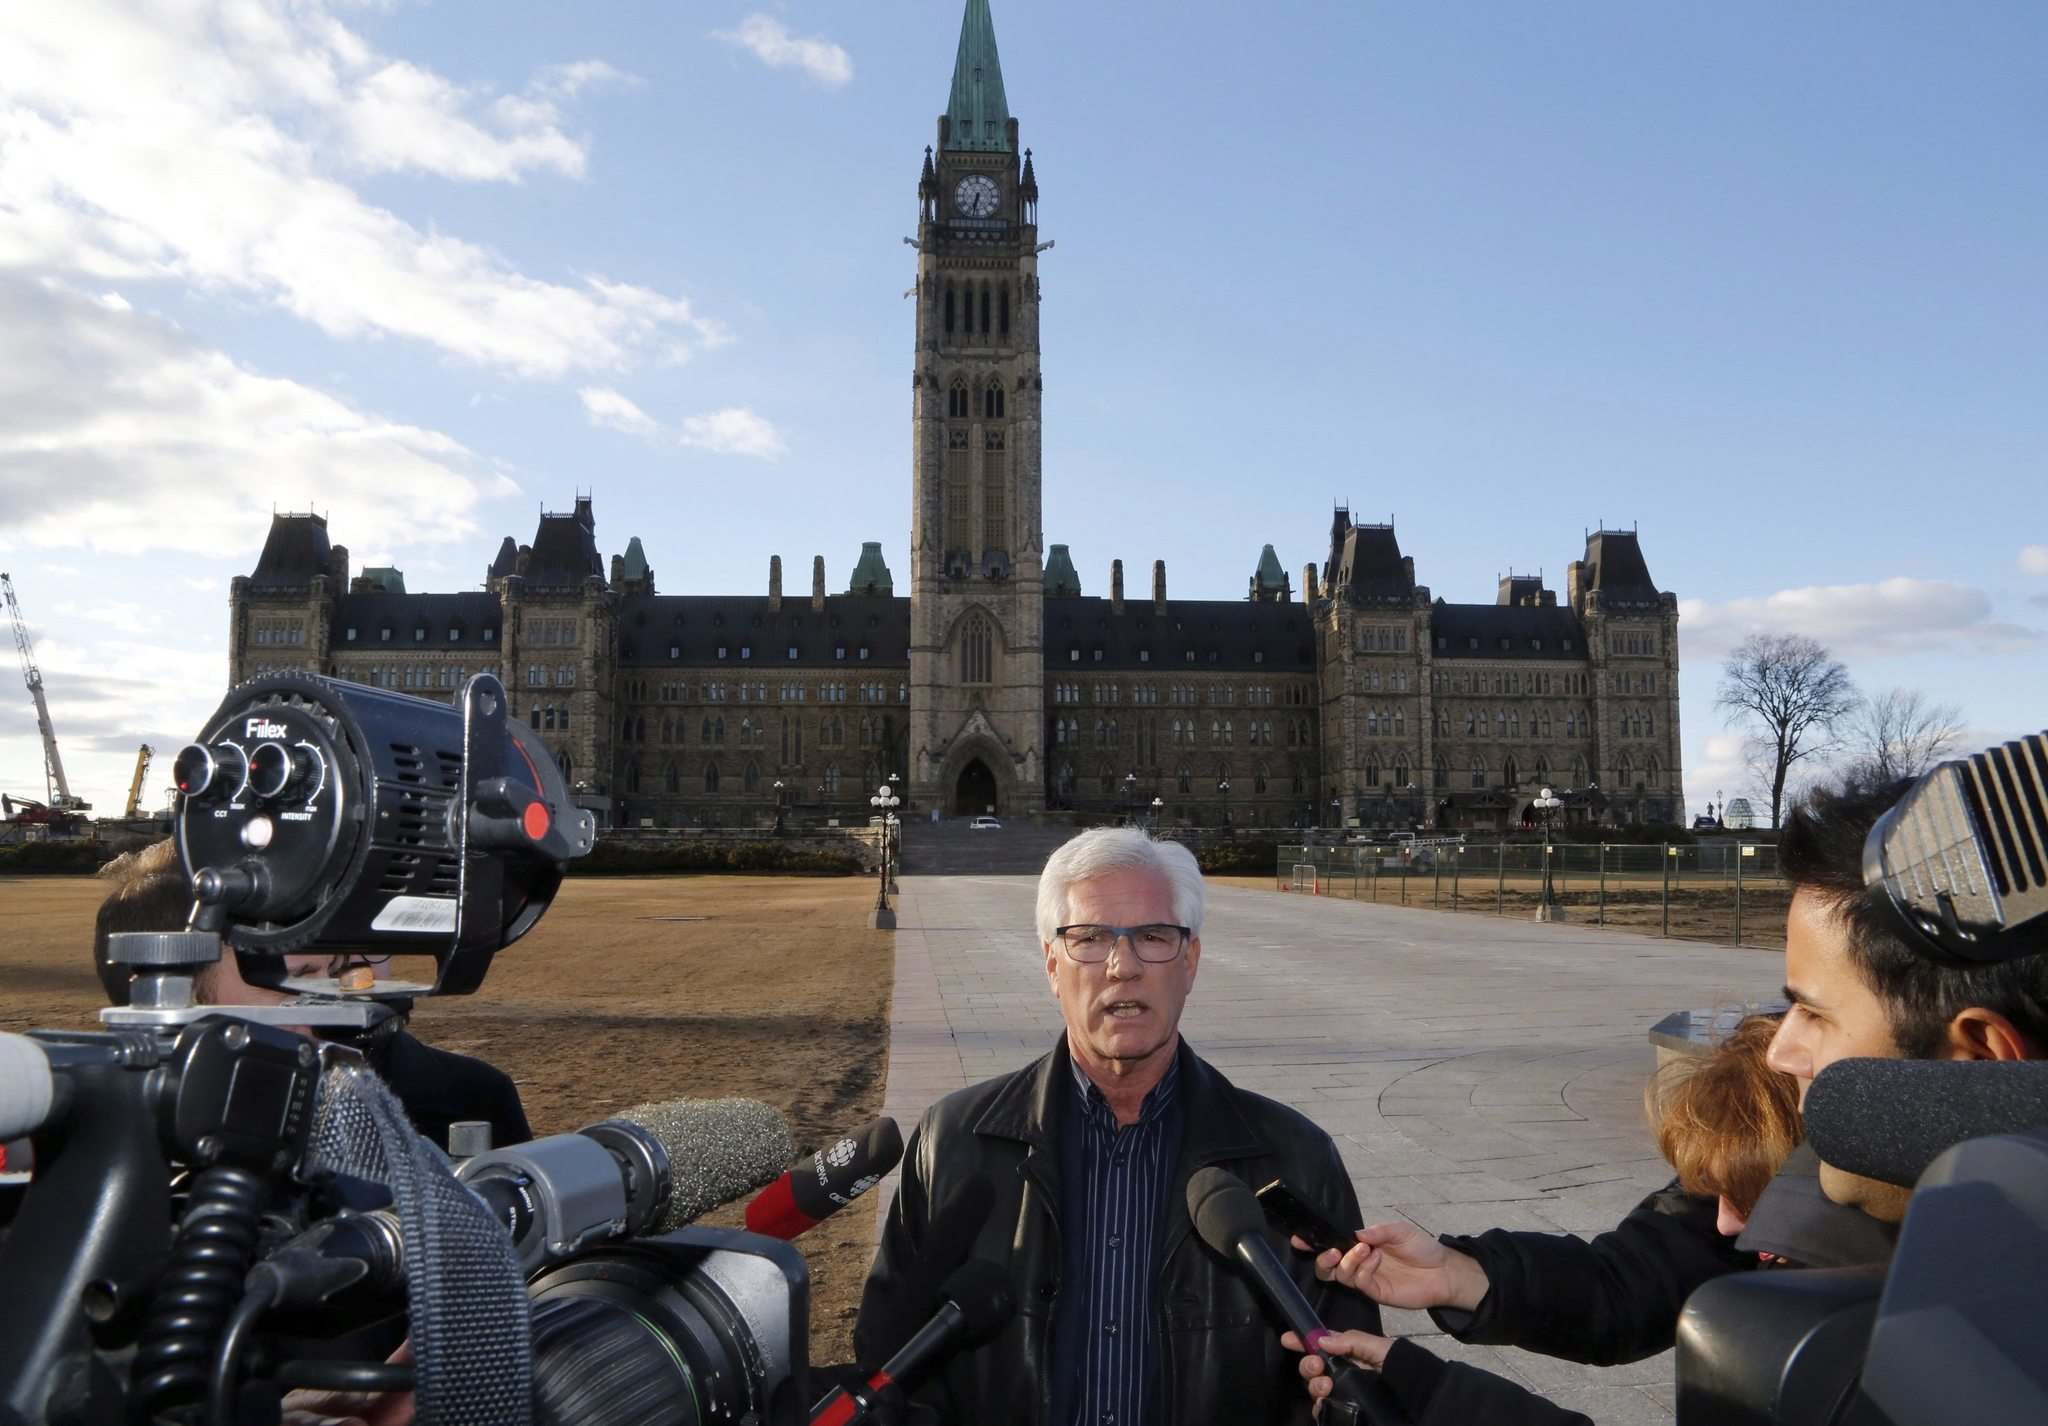 Patrick Doyle / The Canadian Press</p><p>Minister of Natural Resources Jim Carr speaks about the status of the Kinder Morgan pipeline expansion in Ottawa on April 8, 2018.</p>